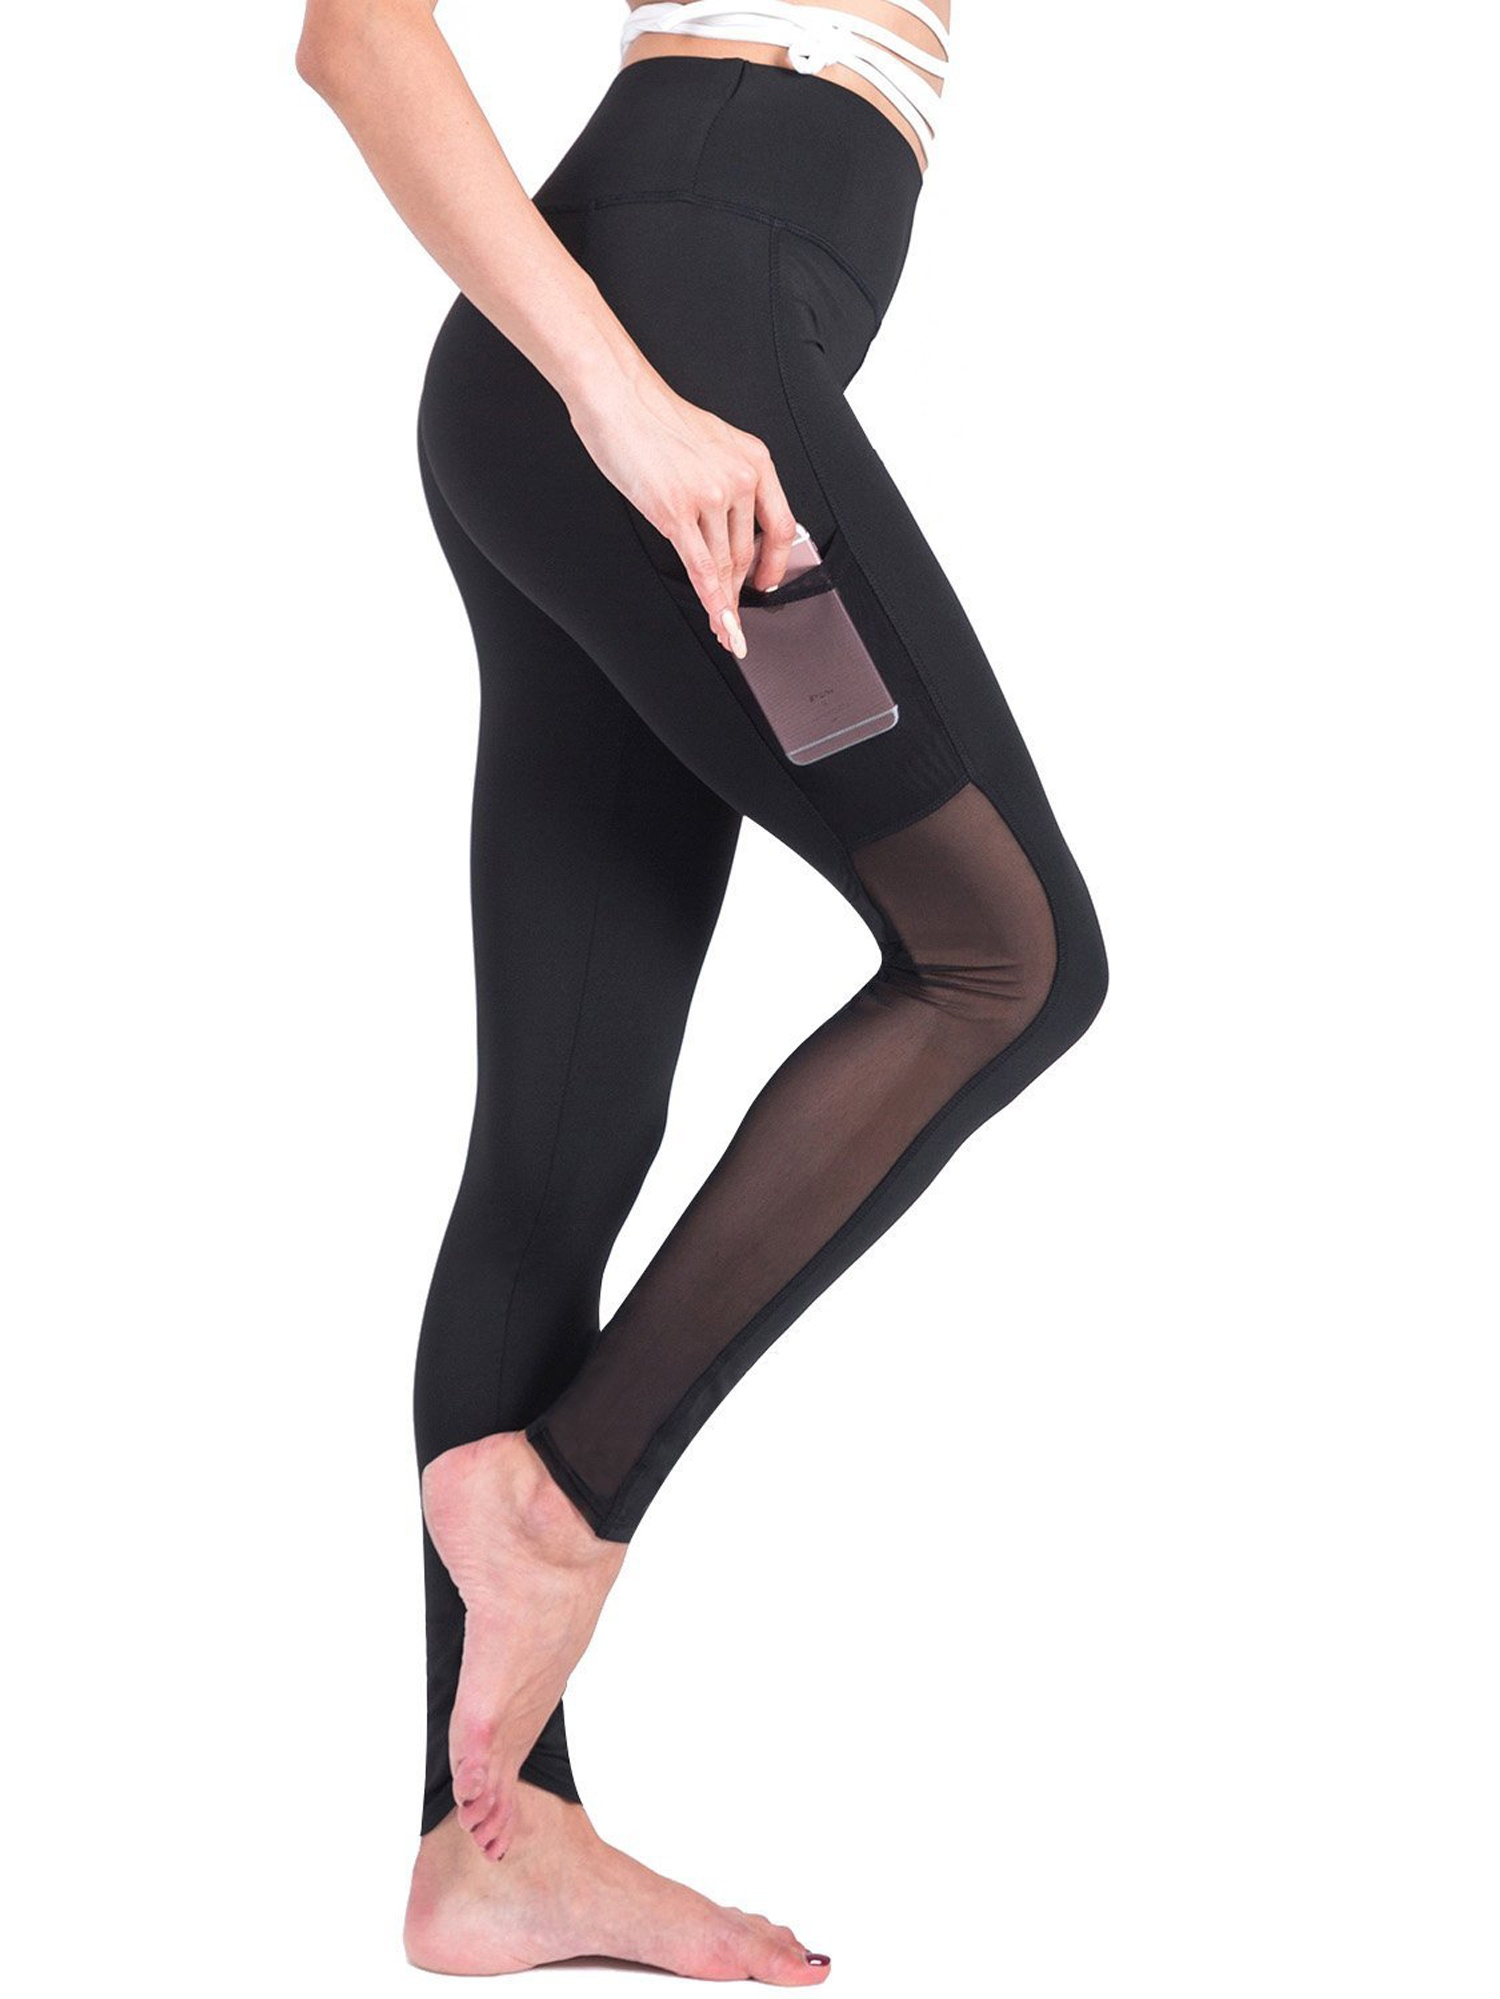 YOGA PANTS TIGHT SPORT WEAR ELASTIC THIN WOMEN FITNESS RUNNING TROUSERS WORKOUT